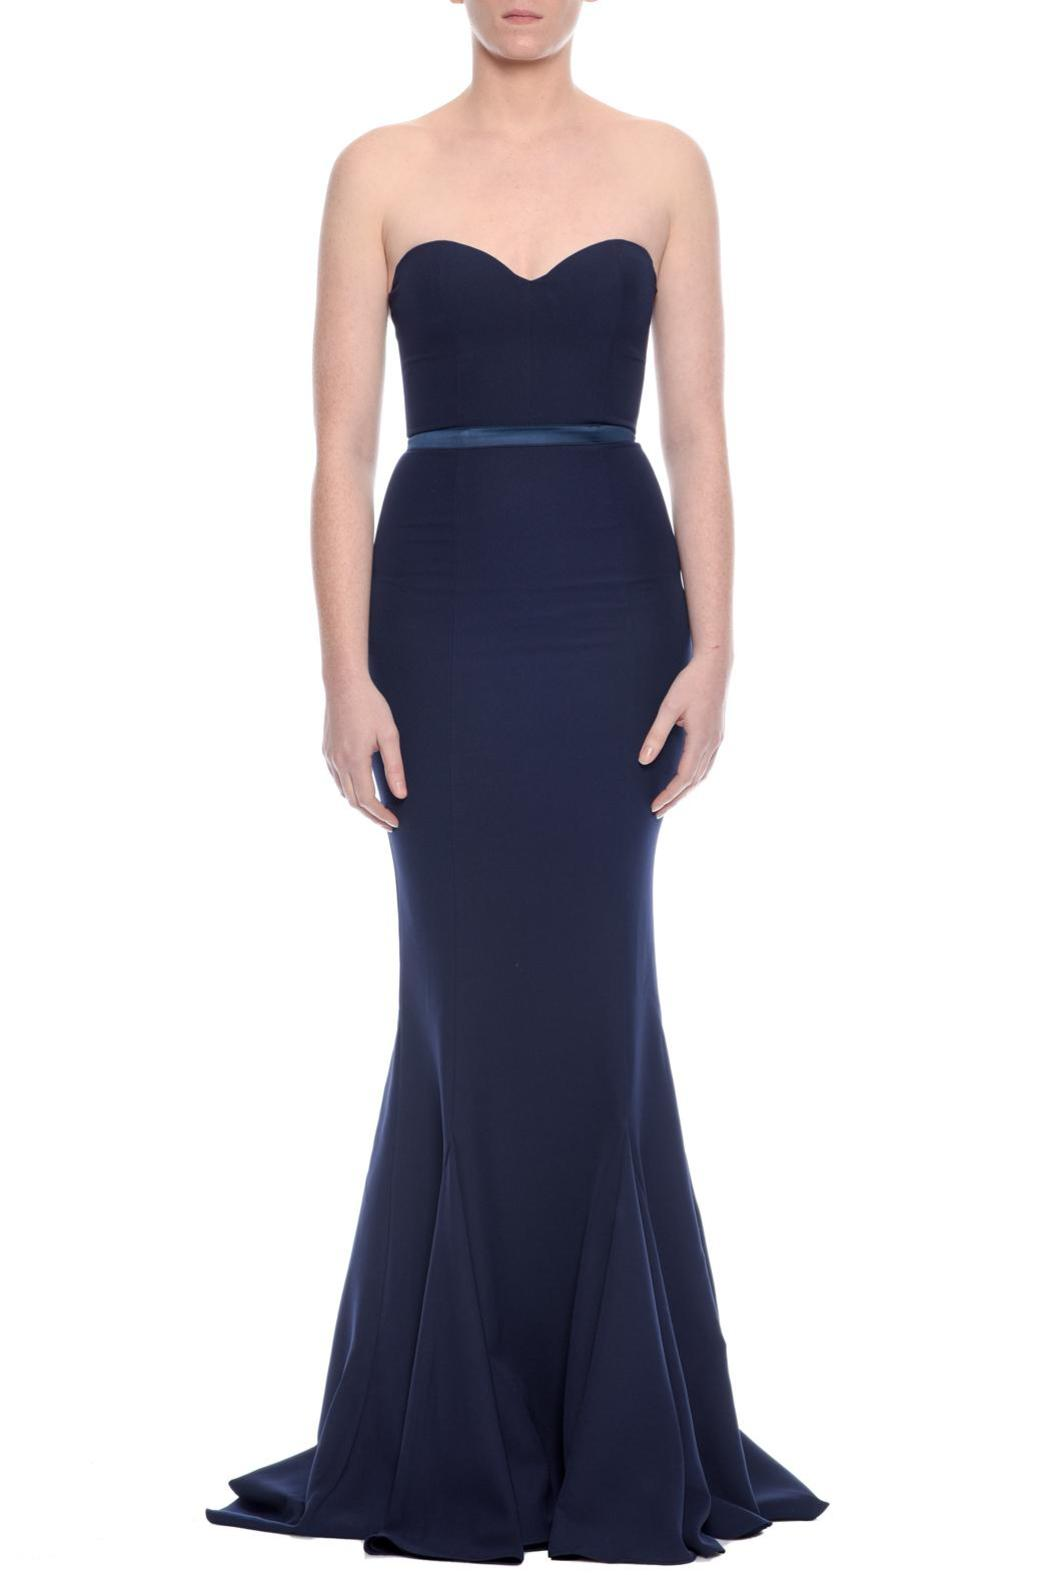 67ff91be6fea Elle Zeitoune Arianna Gown from Sydney by Windsor and Lux — Shoptiques